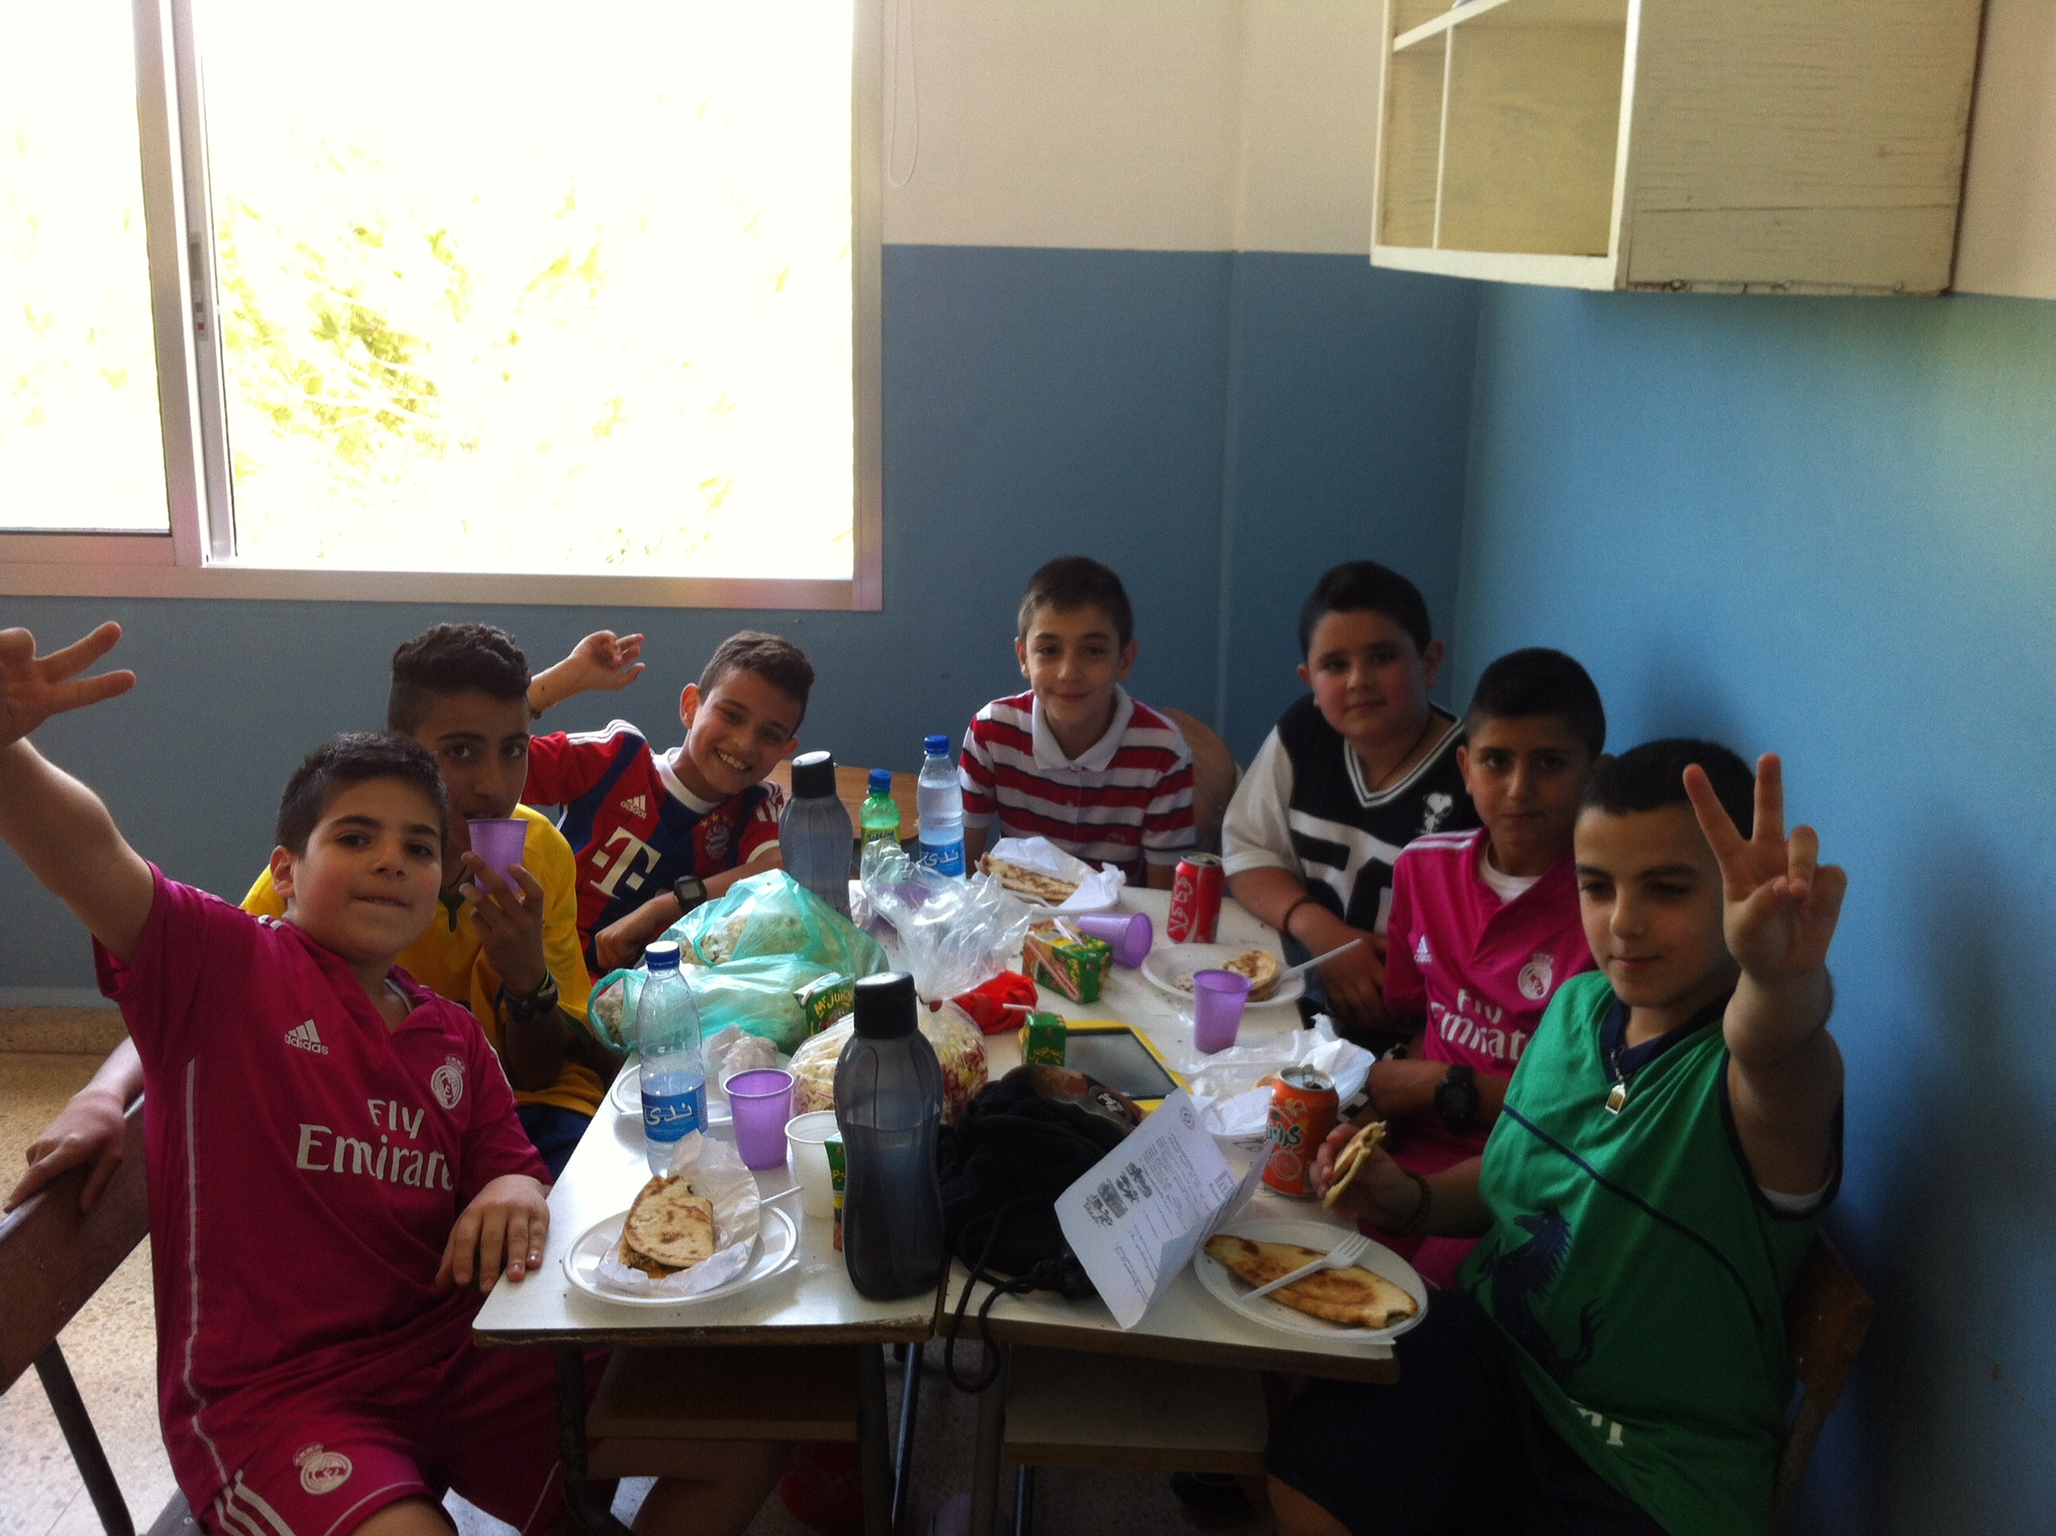 Michou and his friends at school in classroom doing a party at finale school day #Grade 5